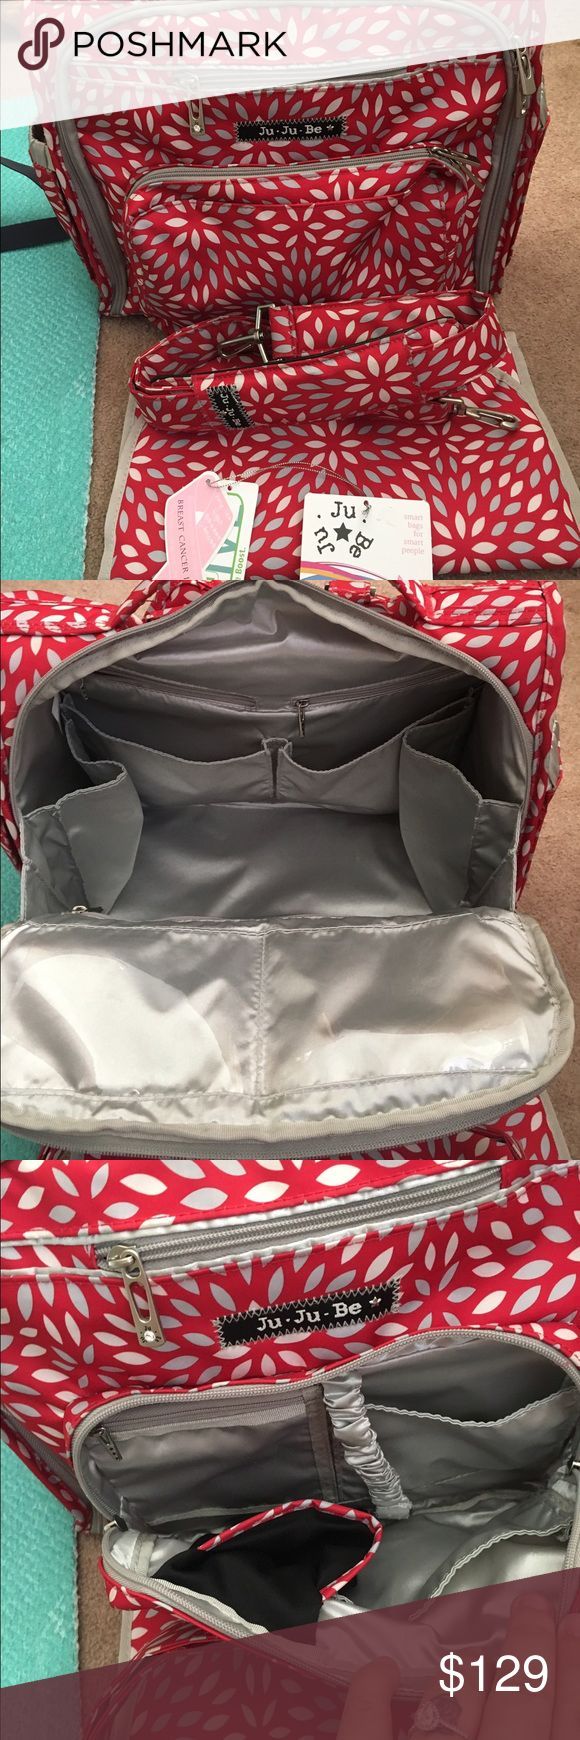 JuJuBe BFF diaper bag Gently used BFF diaper bag! No damage of any sort and well cared for; I'm the original owner and used for maybe 5 months. Comes with tags, the changing pad, shoulder straps and back straps. Firm on price given the 20% cut. JuJuBe Bags Baby Bags